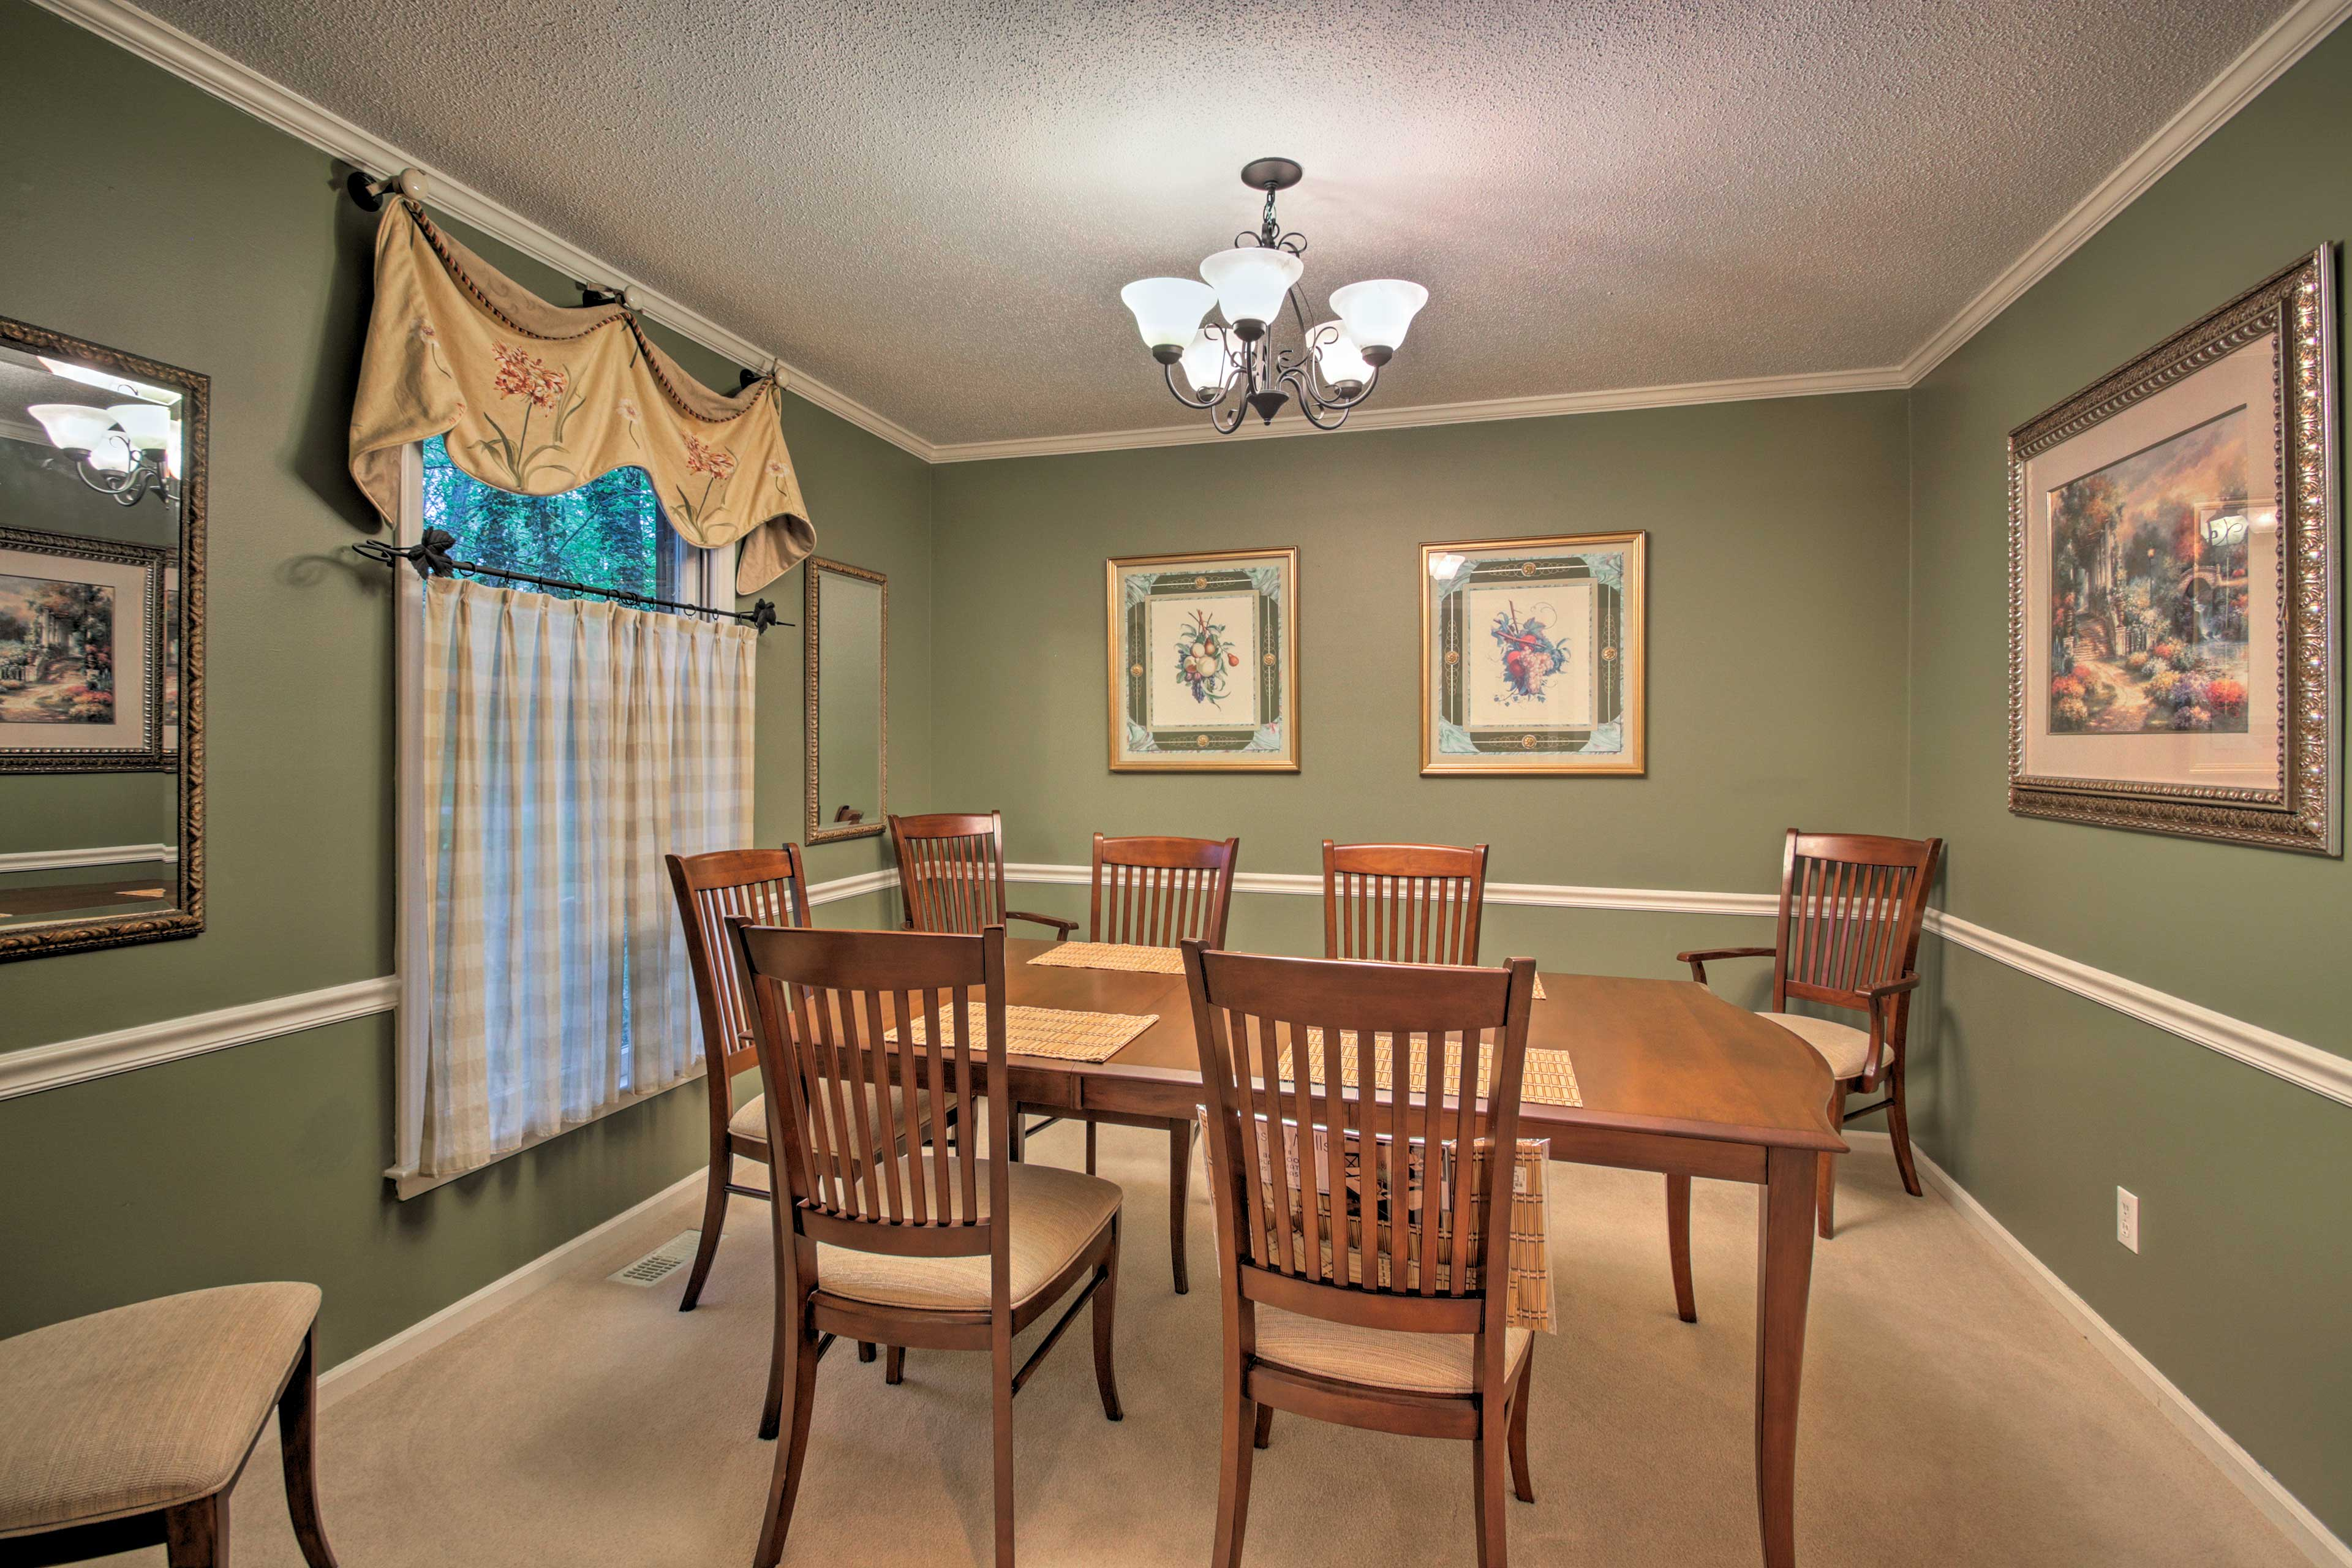 The formal dining space provides seating for 8.